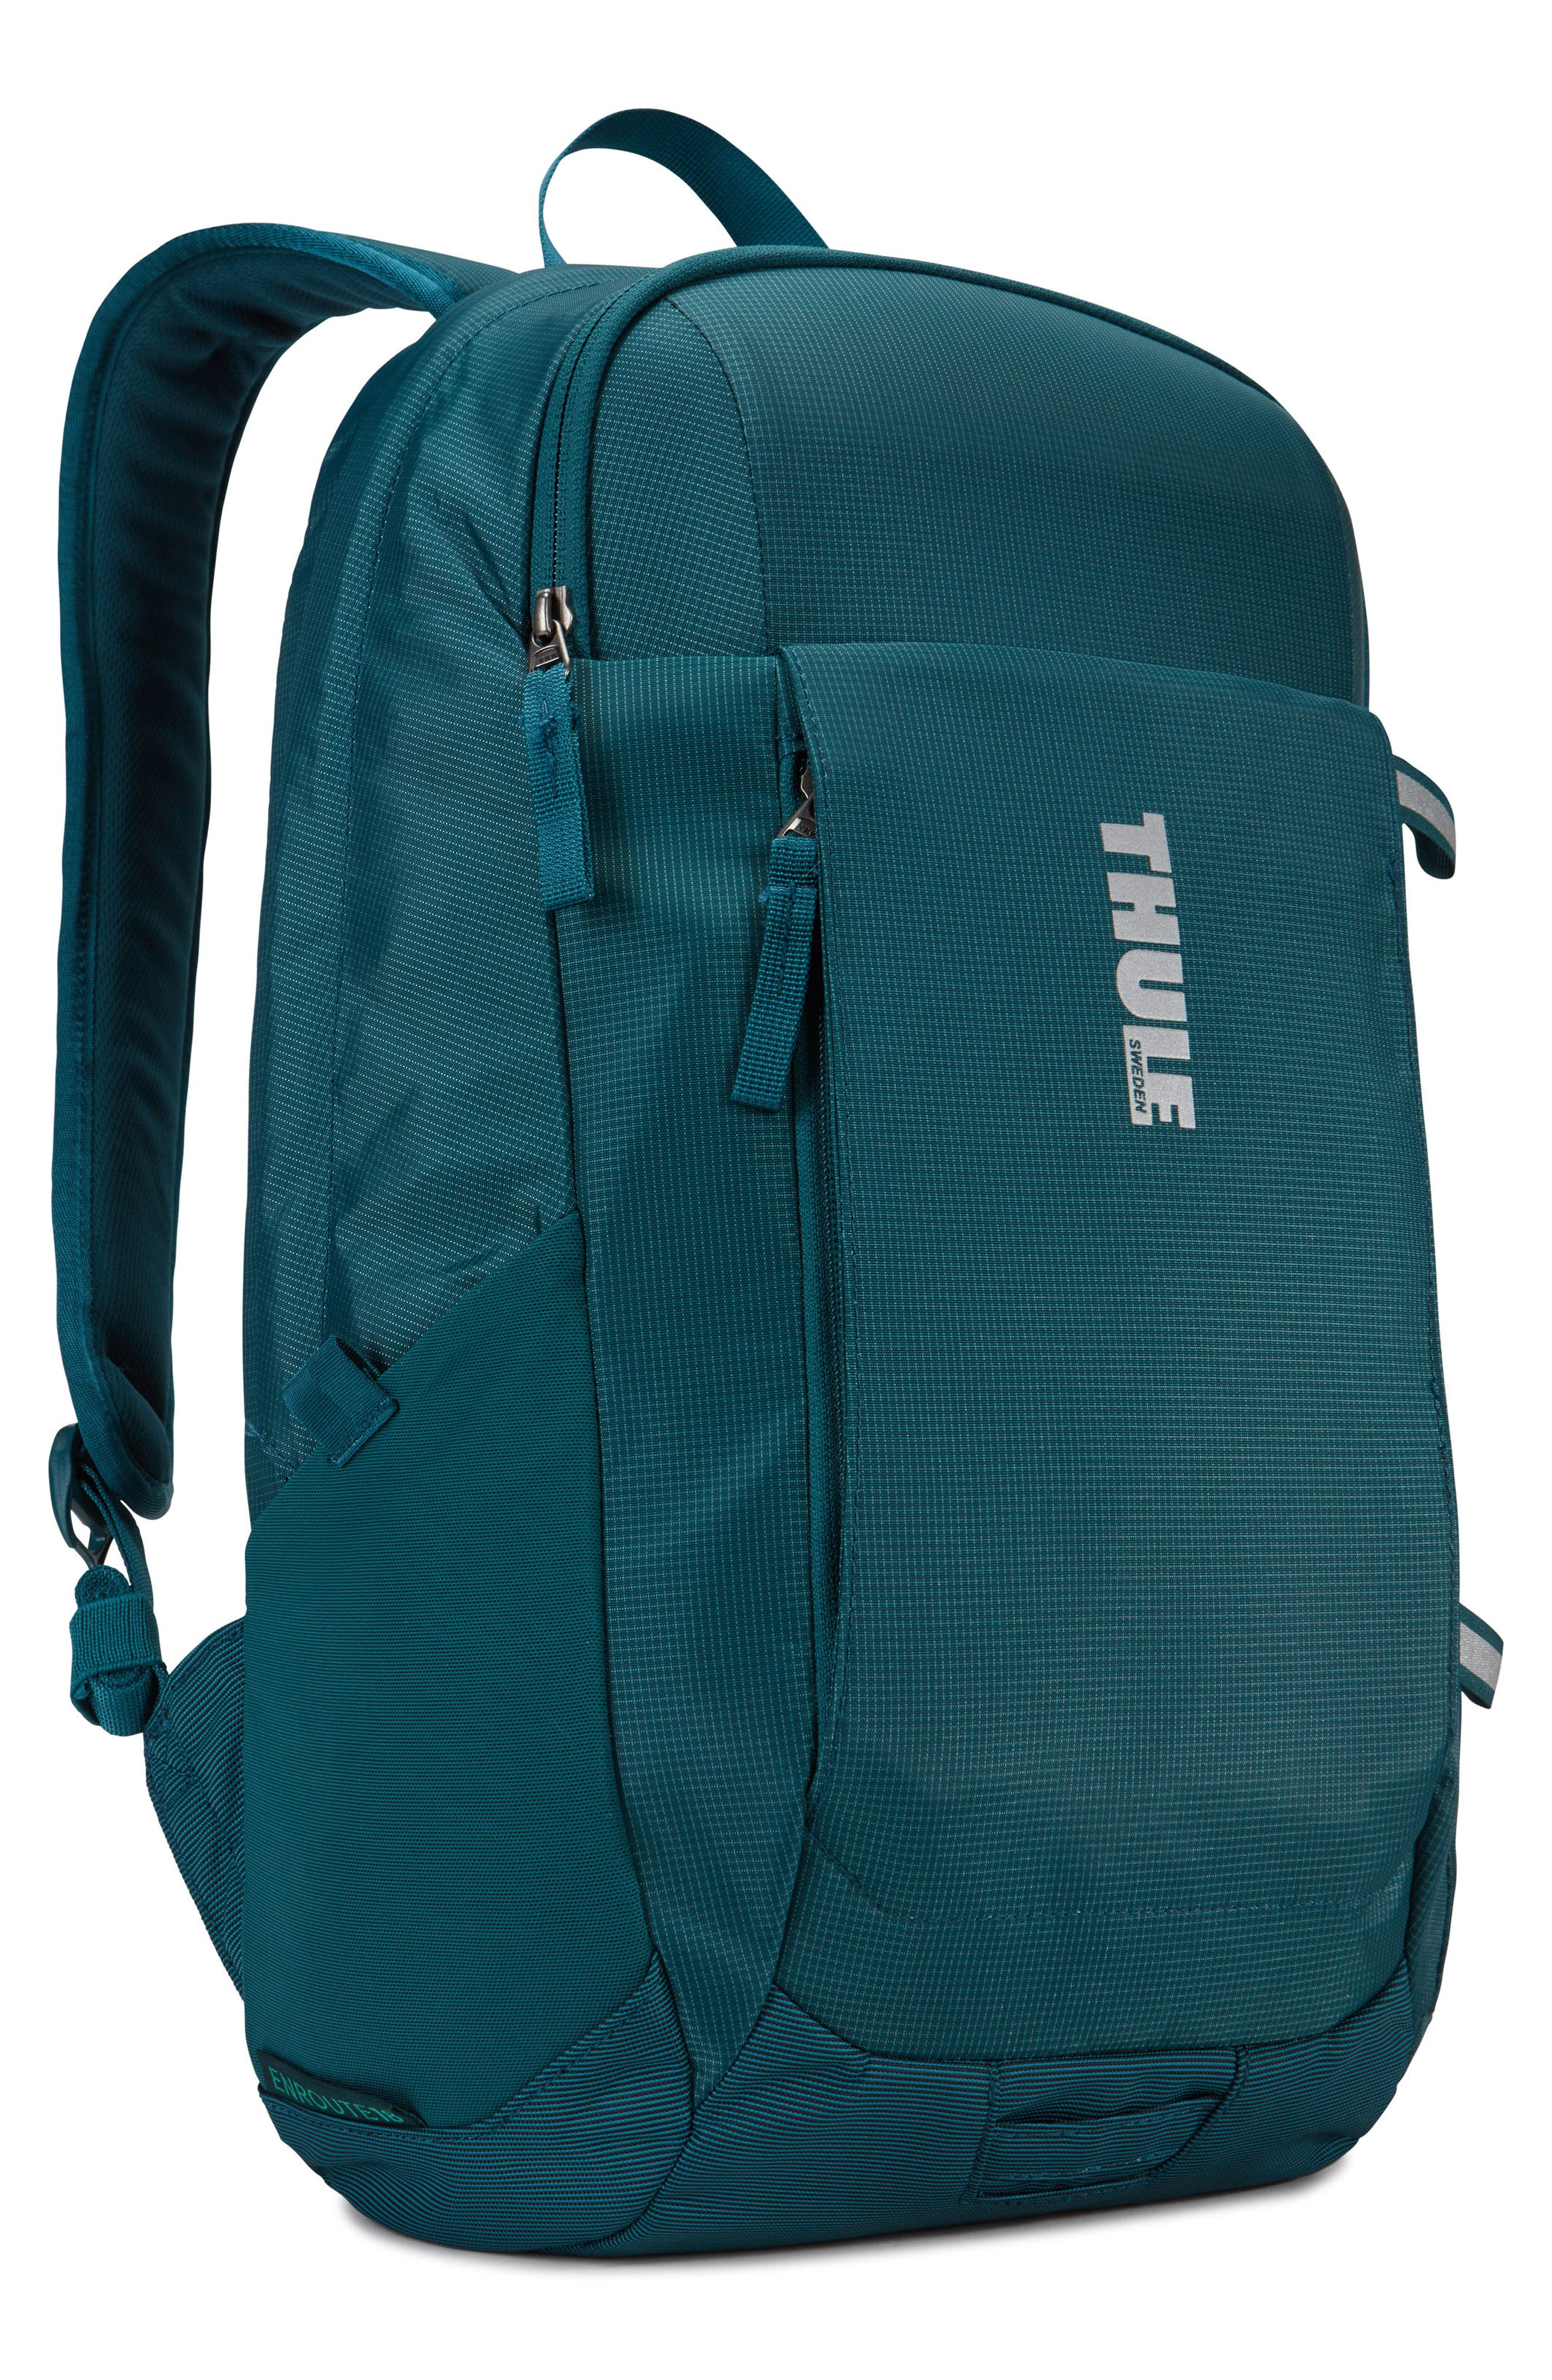 EnRoute Backpack,                             Alternate thumbnail 3, color,                             TEAL